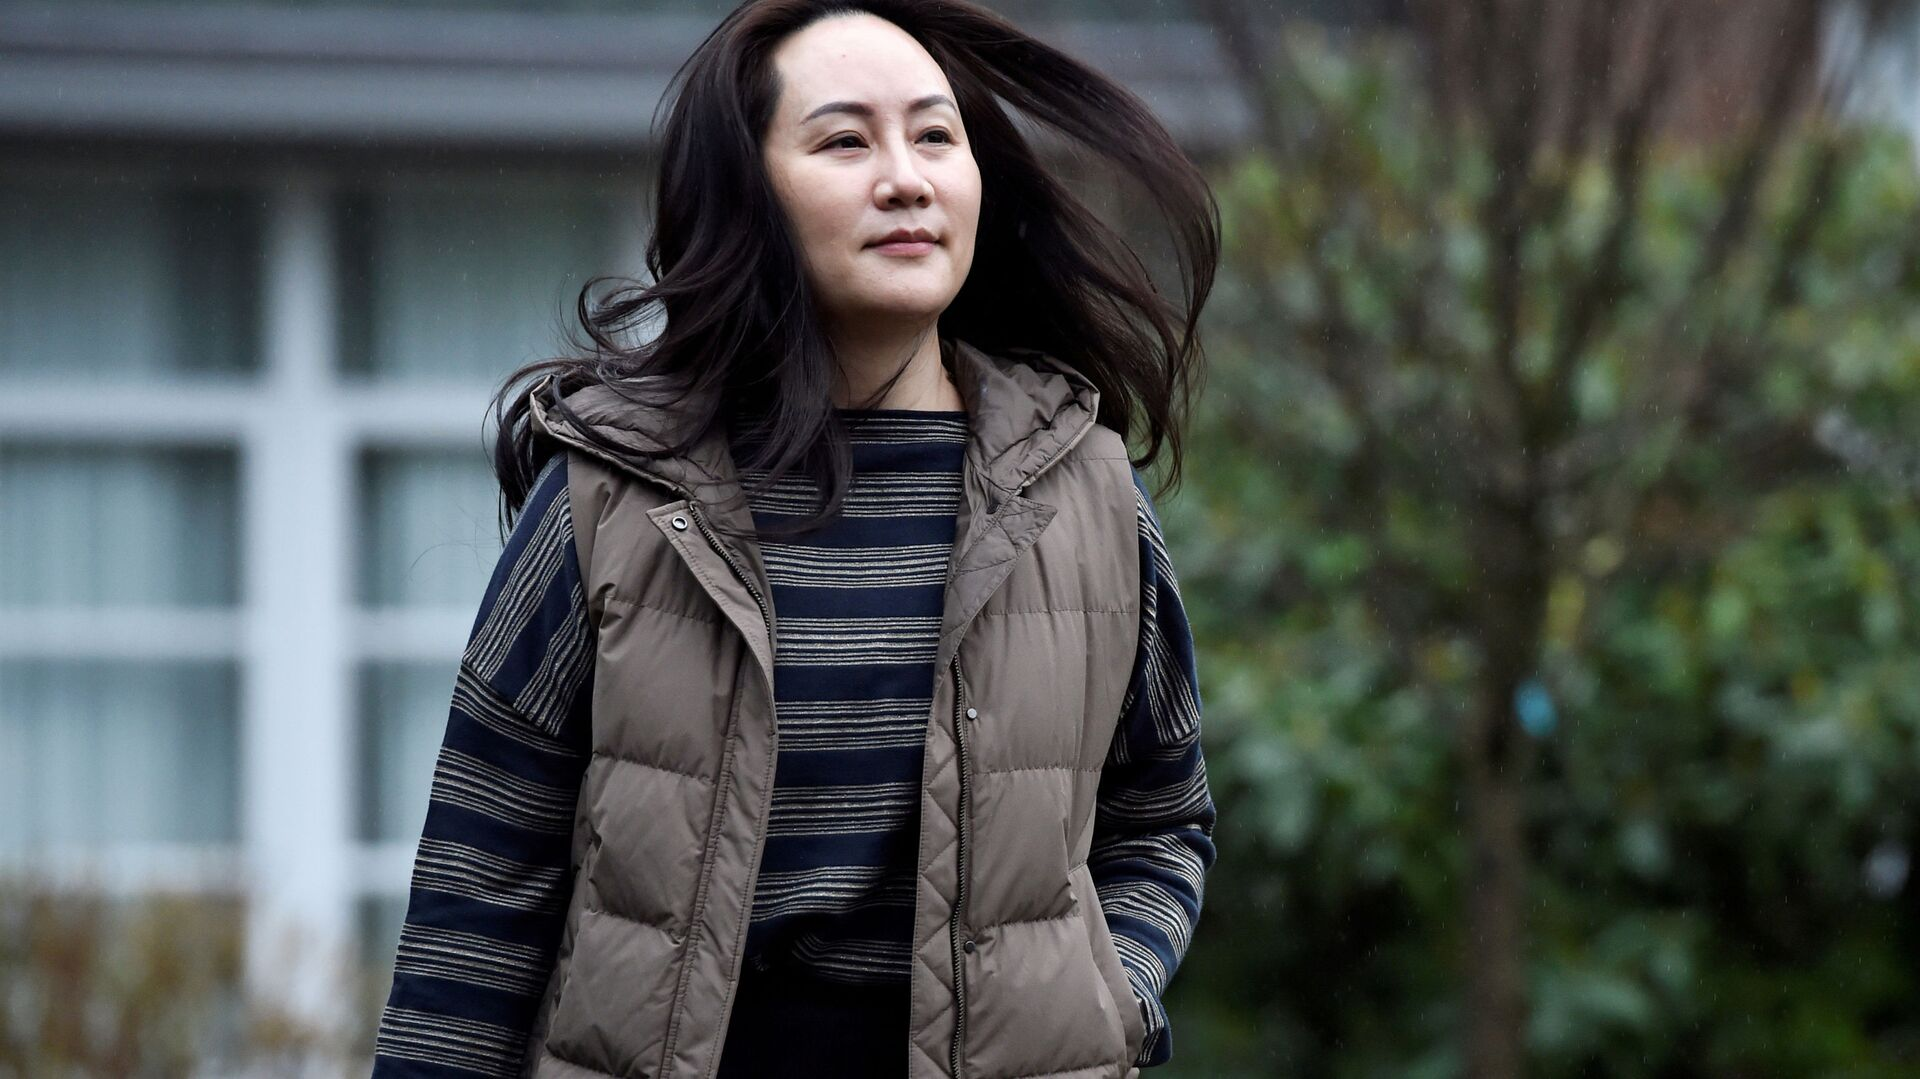 Huawei Technologies Chief Financial Officer Meng Wanzhou leaves her home to attend a court hearing in Vancouver, British Columbia, Canada December 7, 2020. - Sputnik International, 1920, 24.09.2021